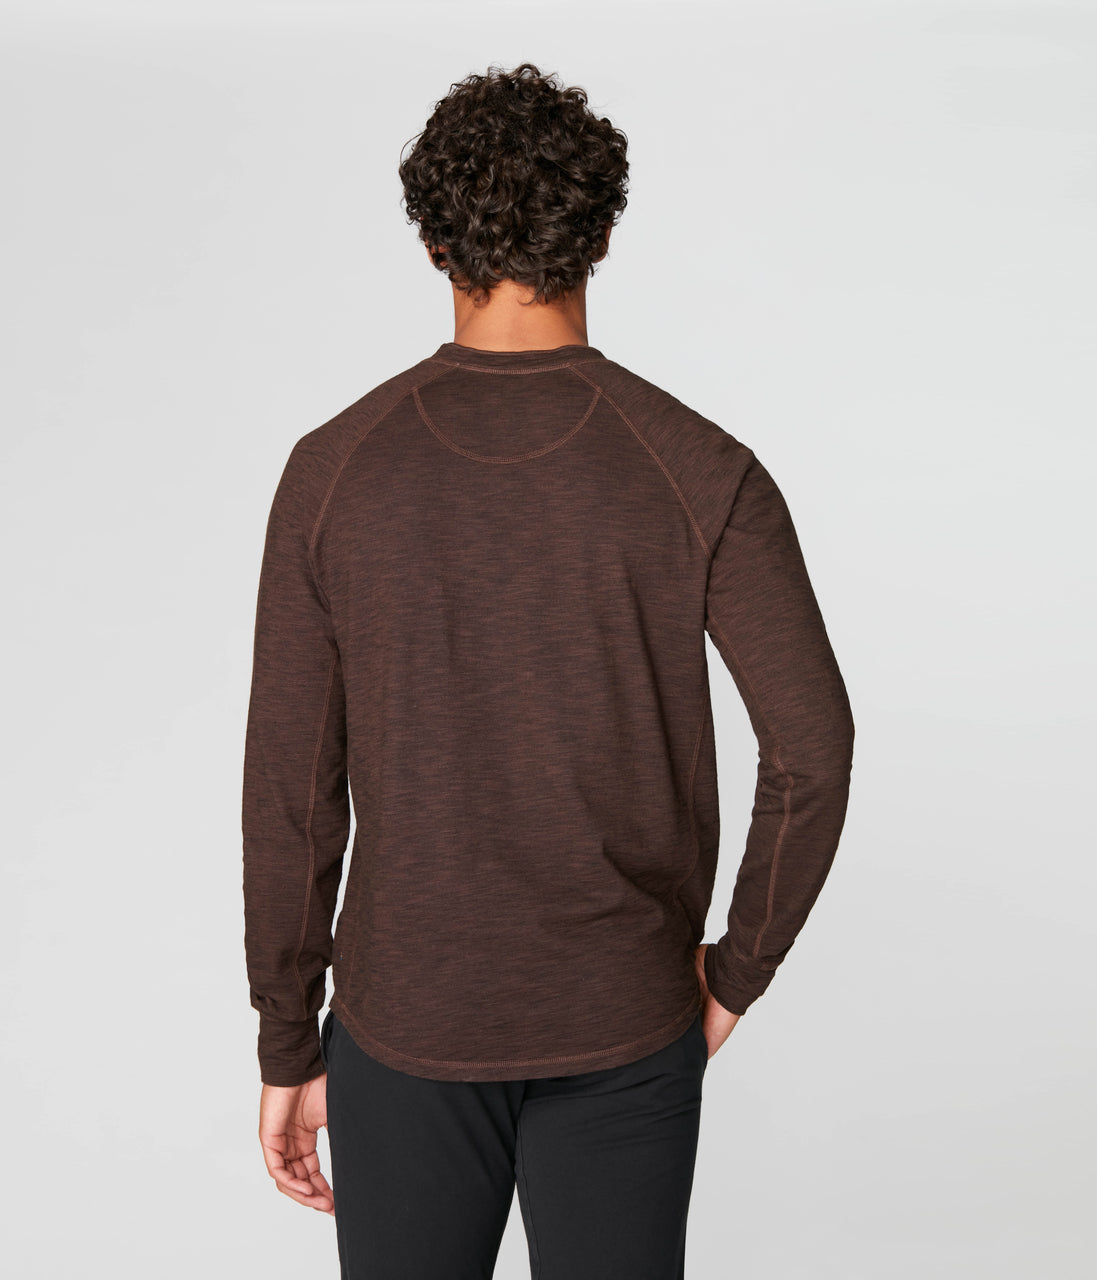 Legend Henley in Black Marl Soft Slub - Black Coffee - Good Man Brand - Legend Henley in Black Marl Soft Slub - Black Coffee